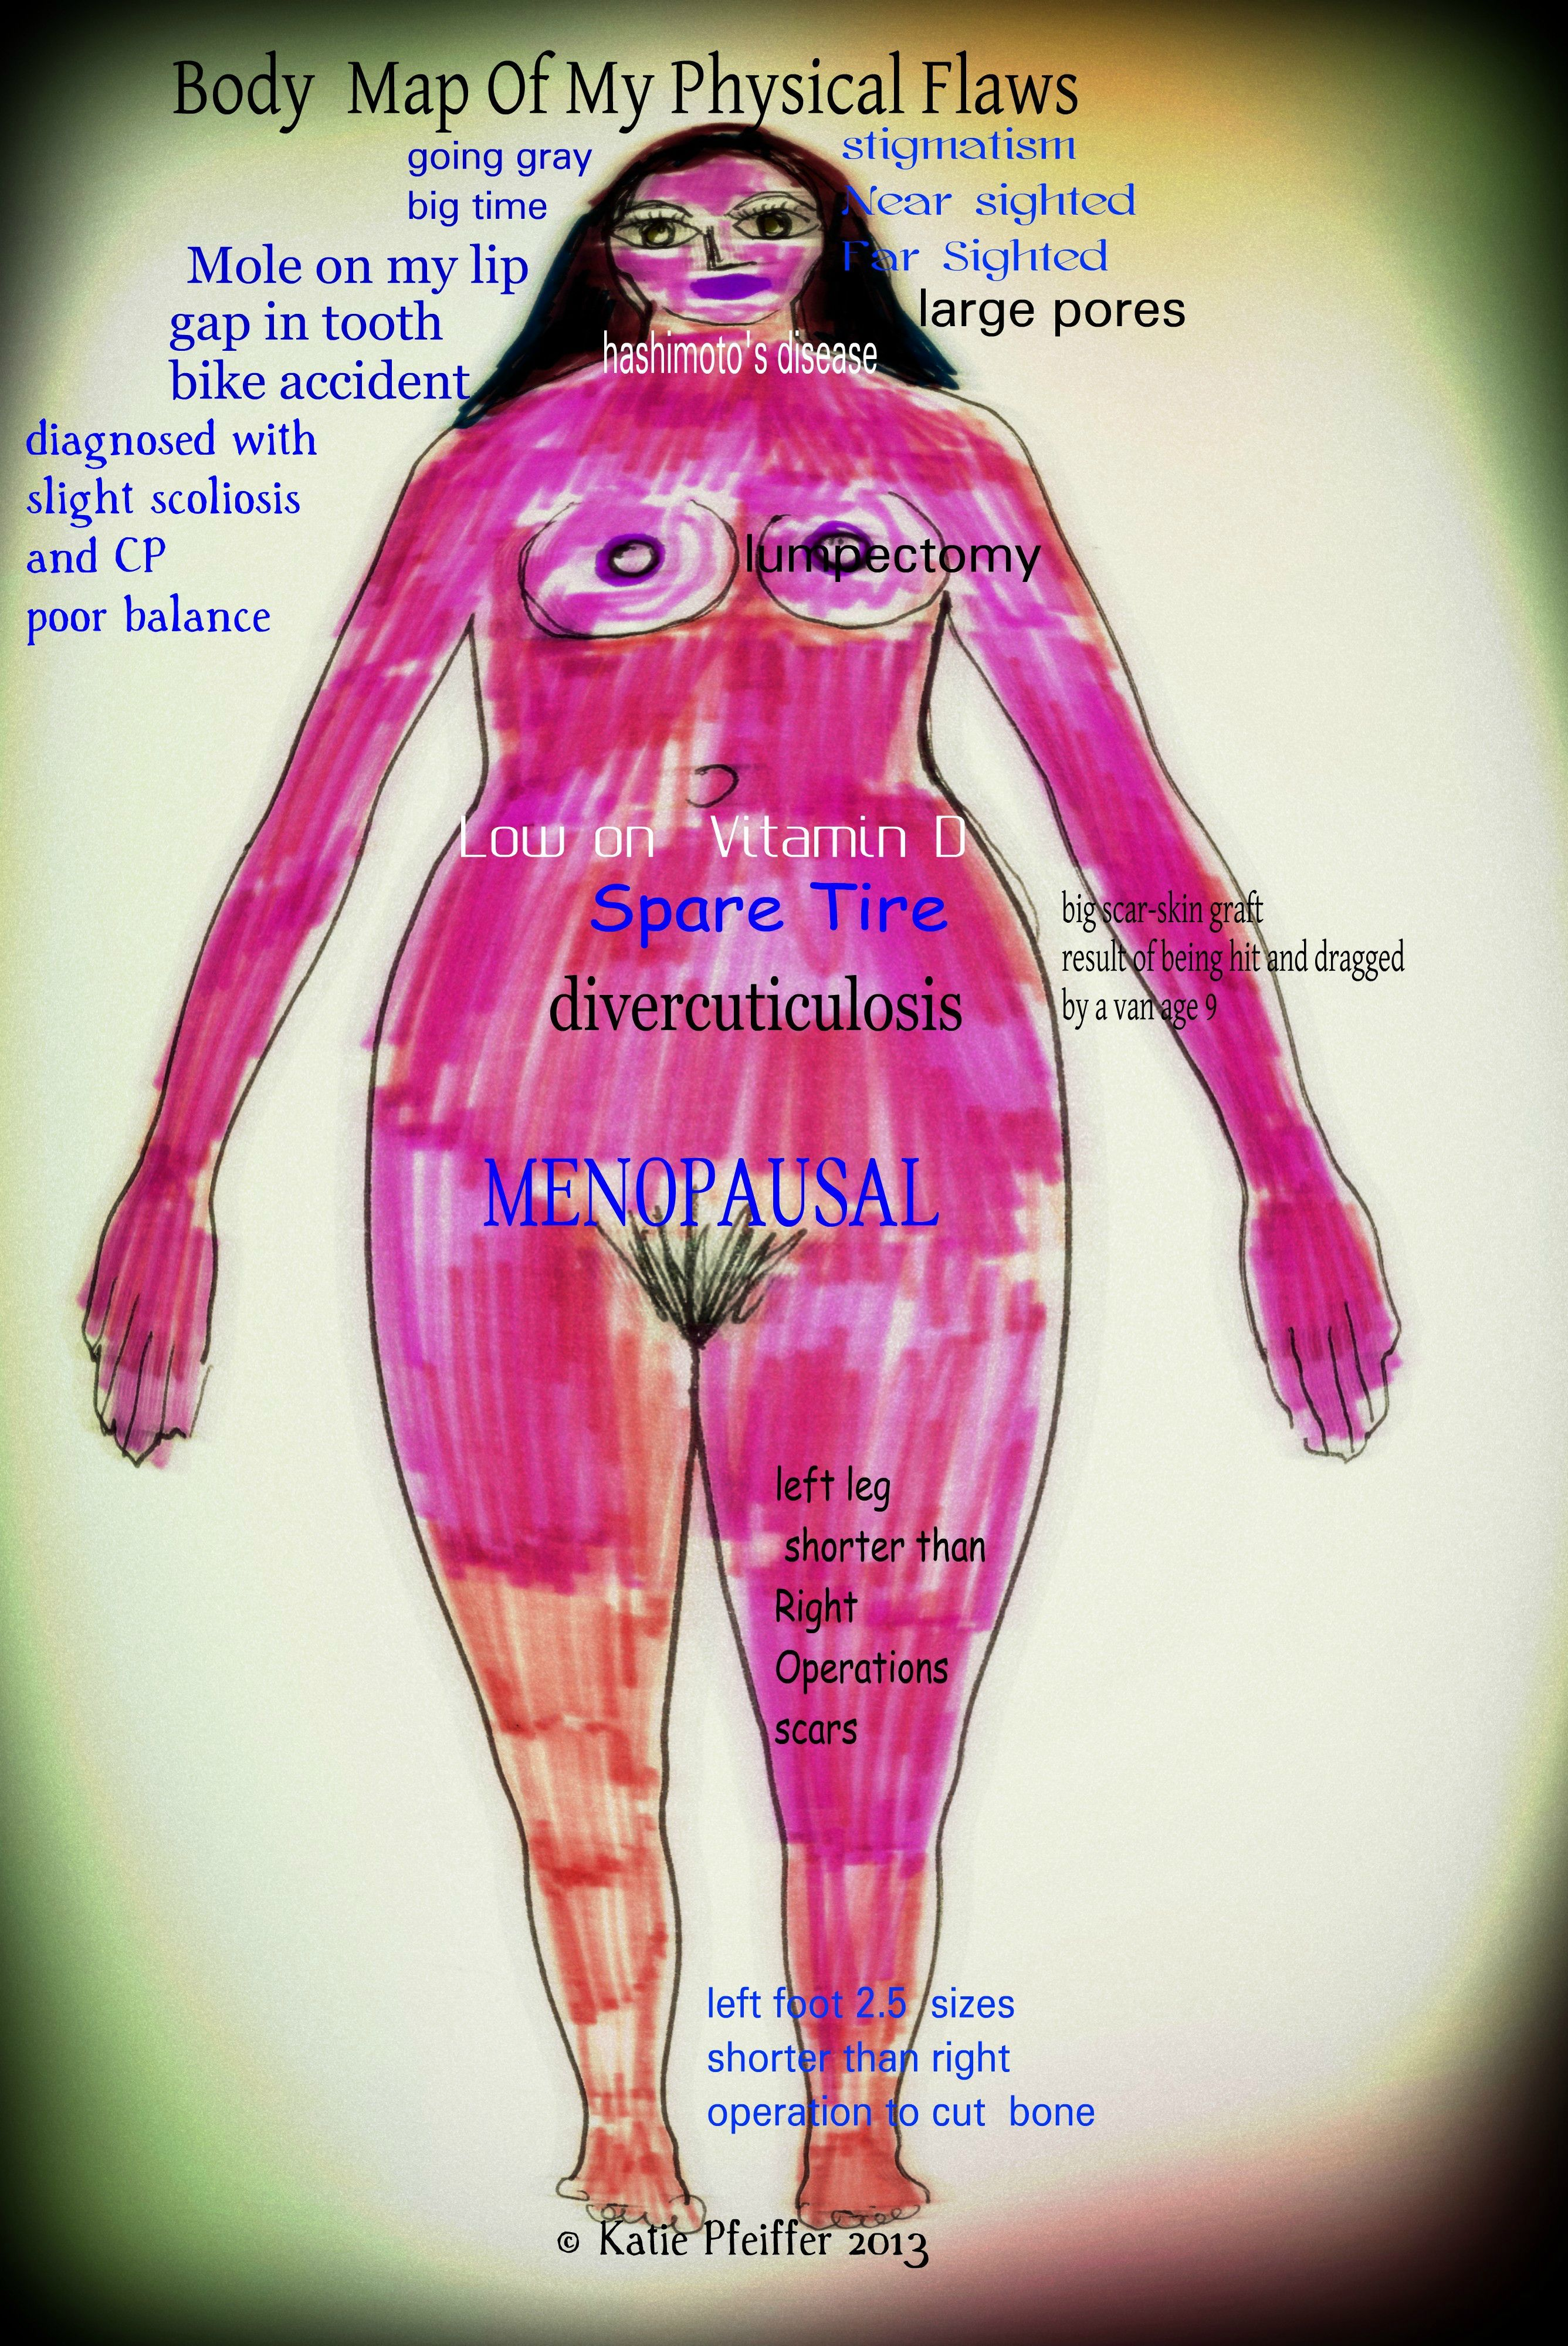 This is  a body map of my physical flaws.